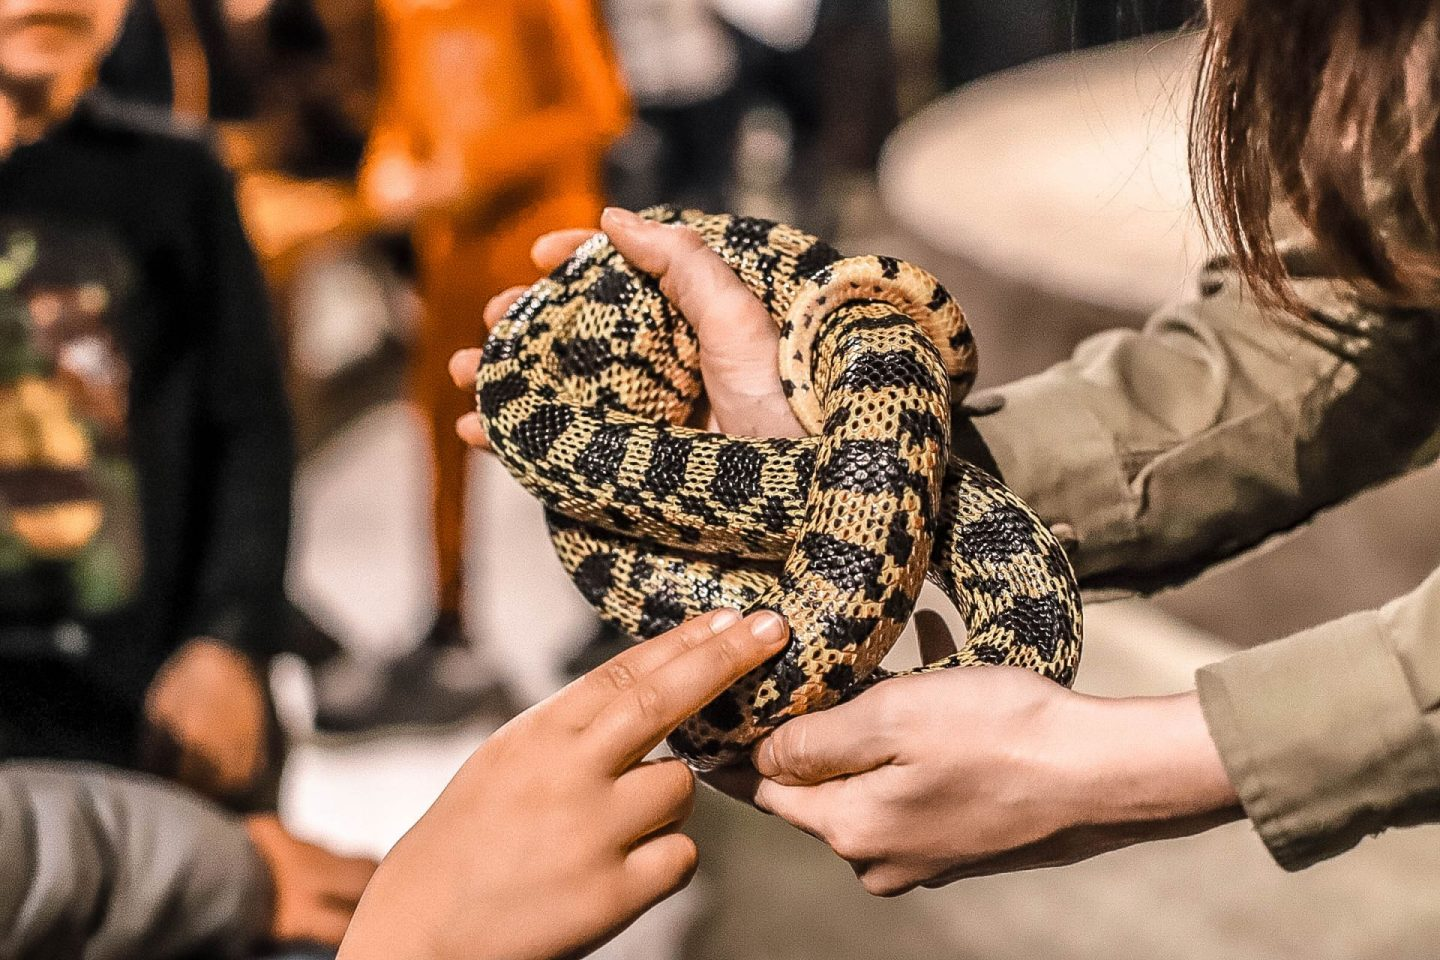 a snake being touched